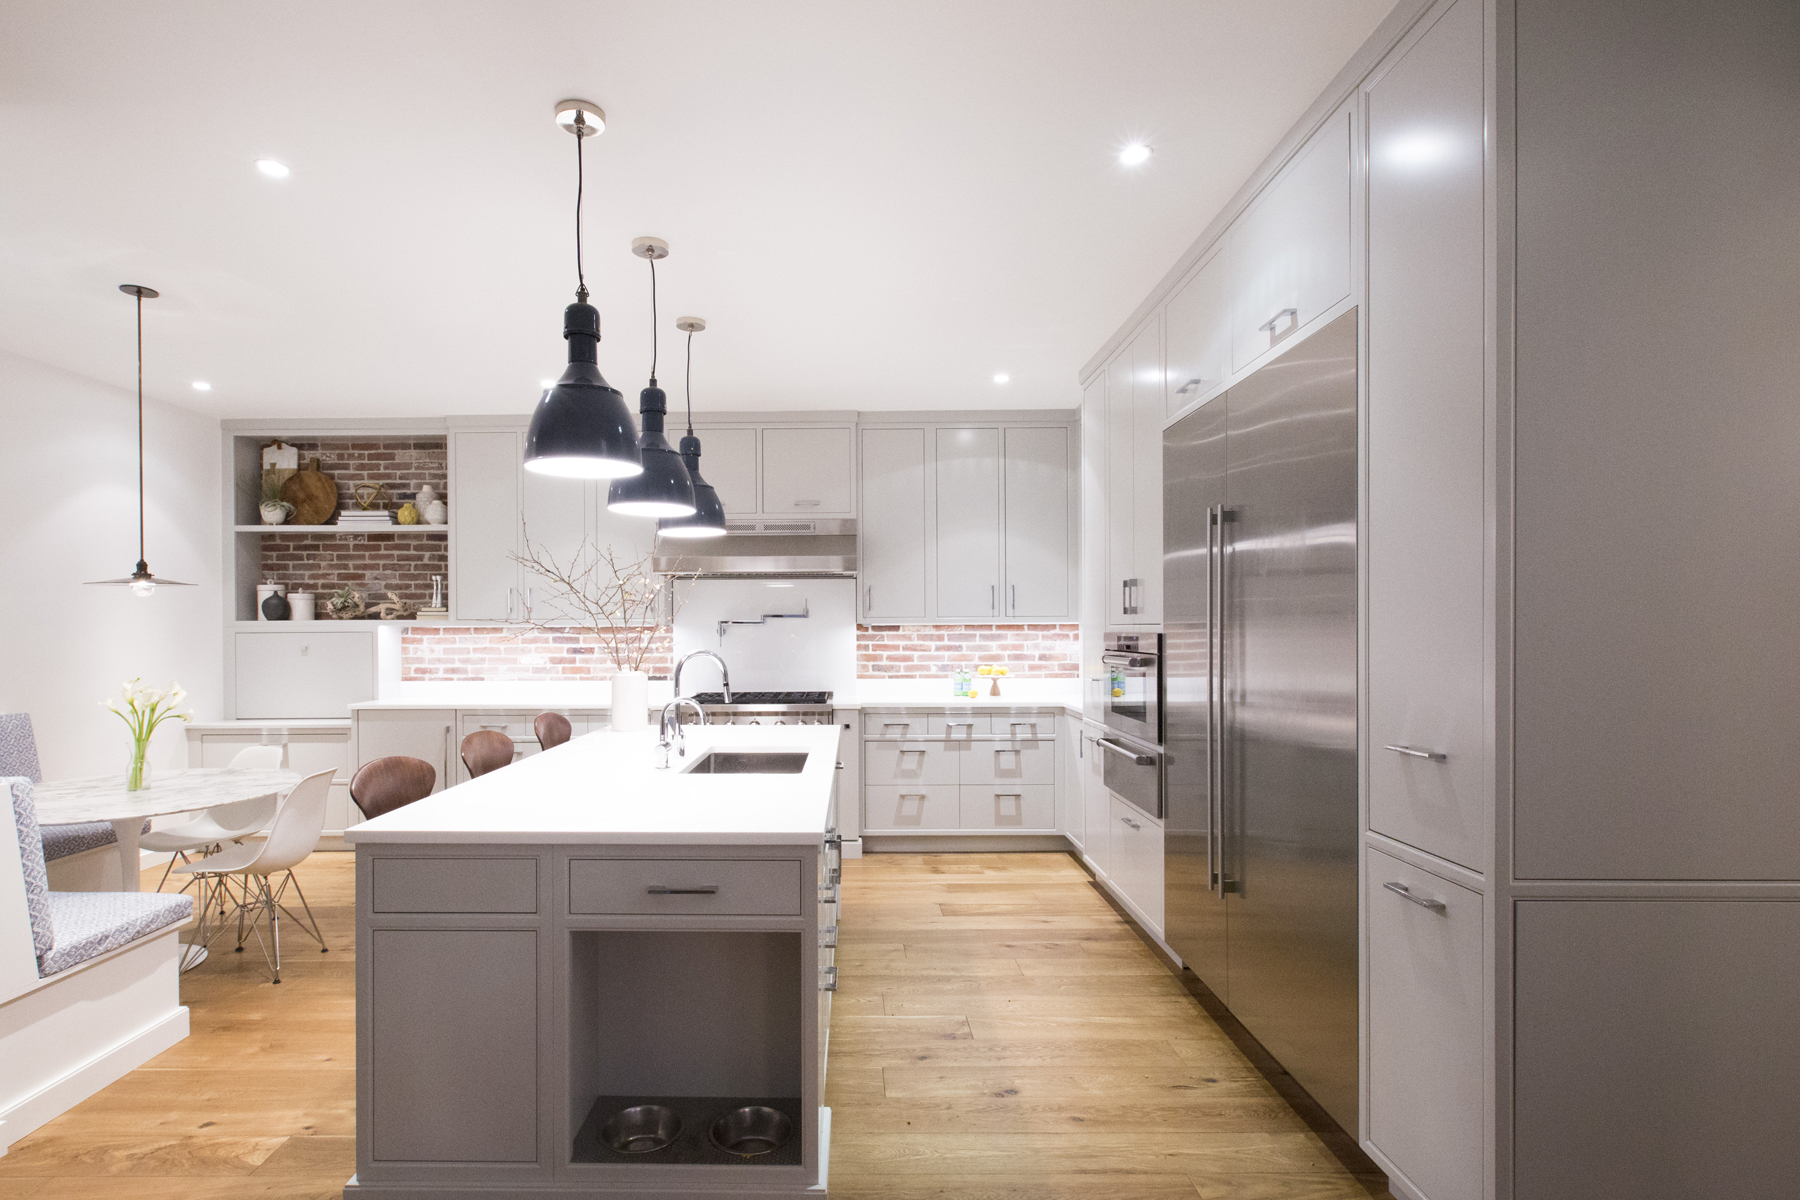 Transitional kitchen features exposed brick walls, oak flooring, center island with sink and seating, white quartz counters and fully custom flat panel grey painted cabinets by Bilotta with brushed stainless hardware. Design by Aston Smith of Bilotta Kitchens.